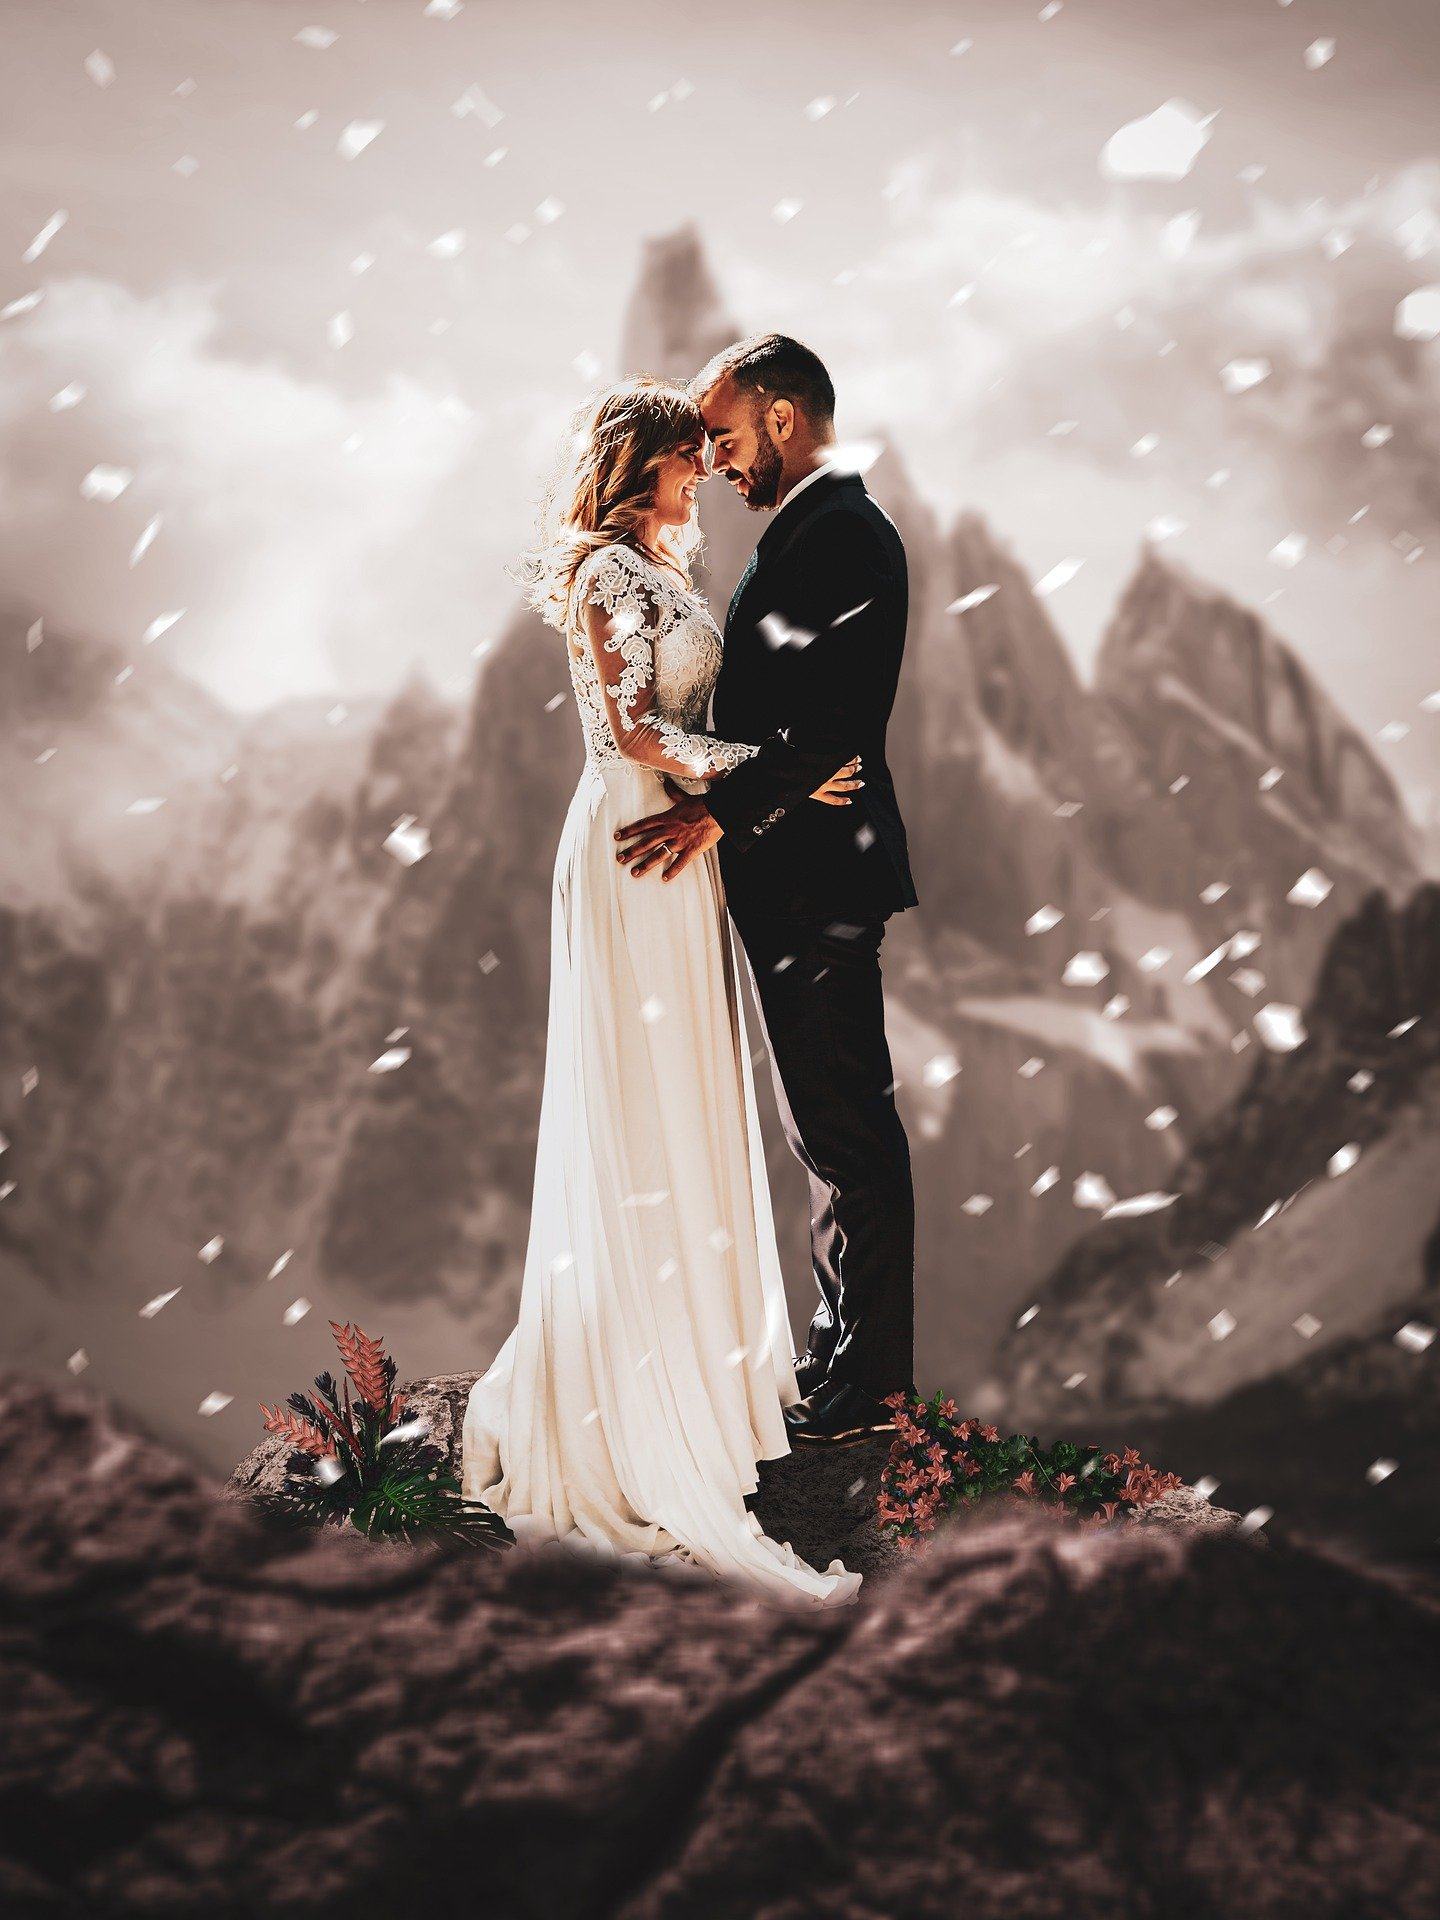 Six Good Reasons to Consider a Winter Wedding in 2020